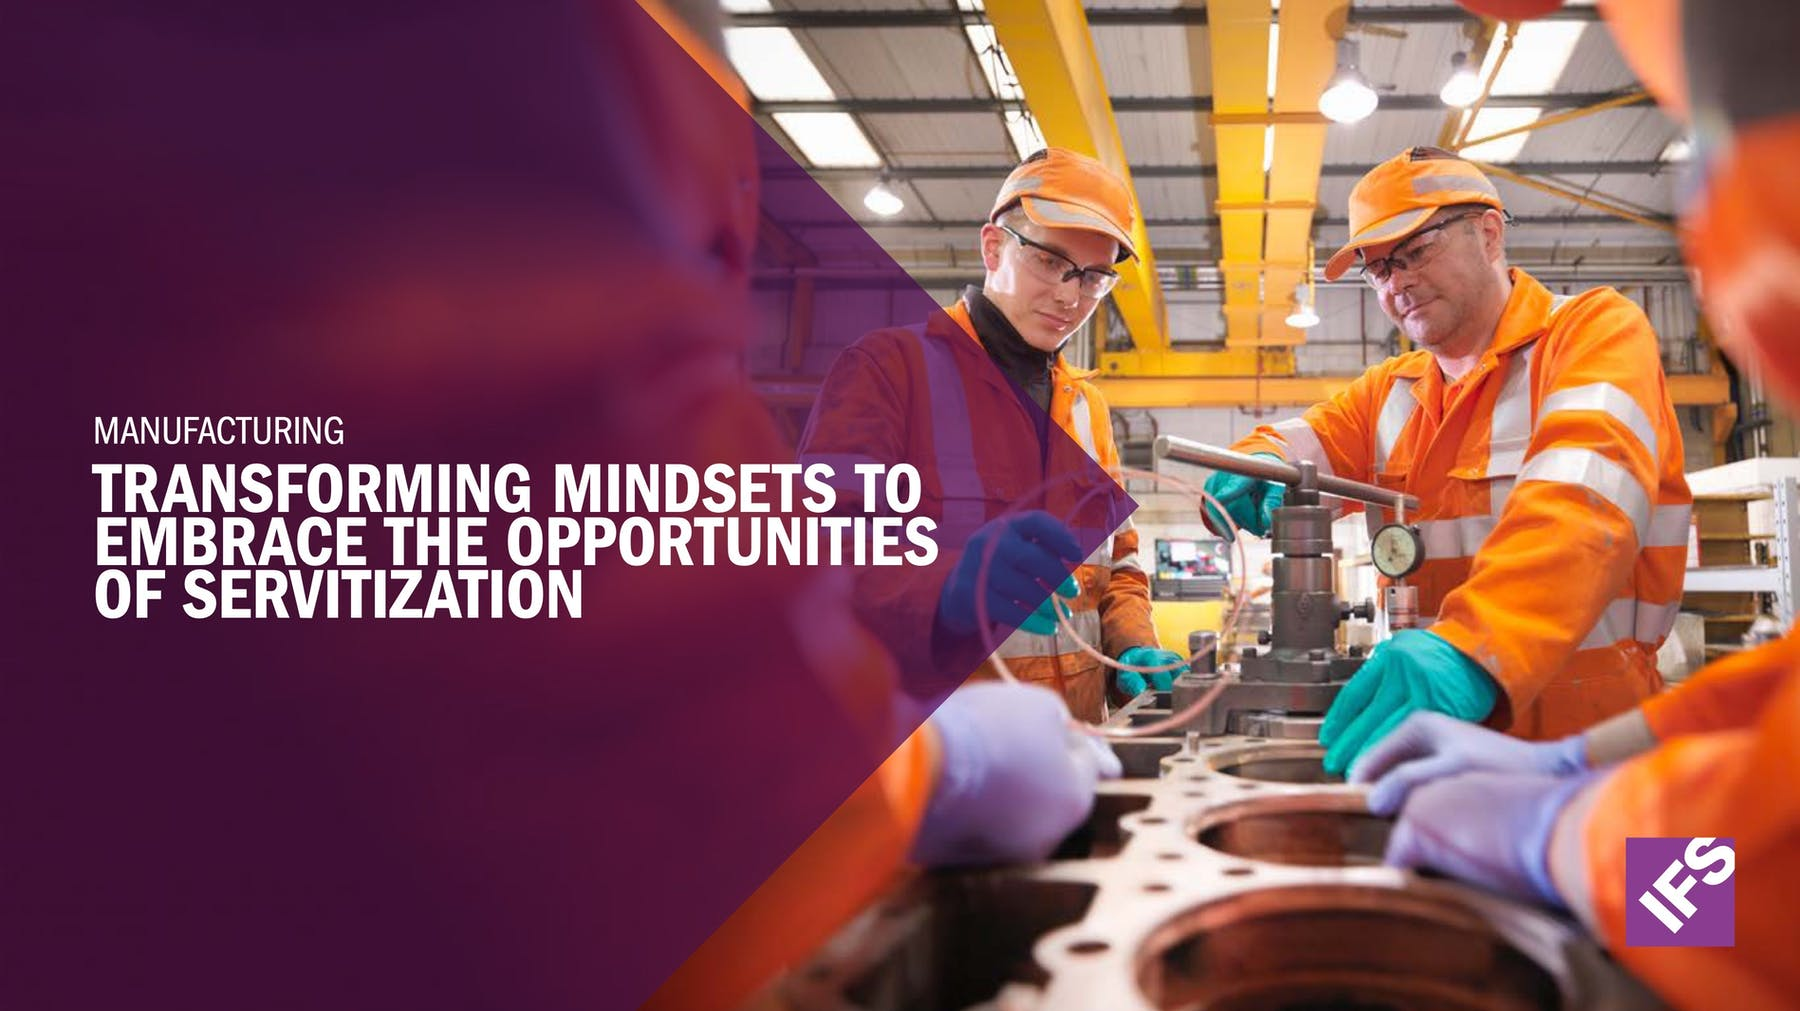 IFS Applications 10 White Paper - Transforming Mindsets to Embrace the Opportunities of Servitization